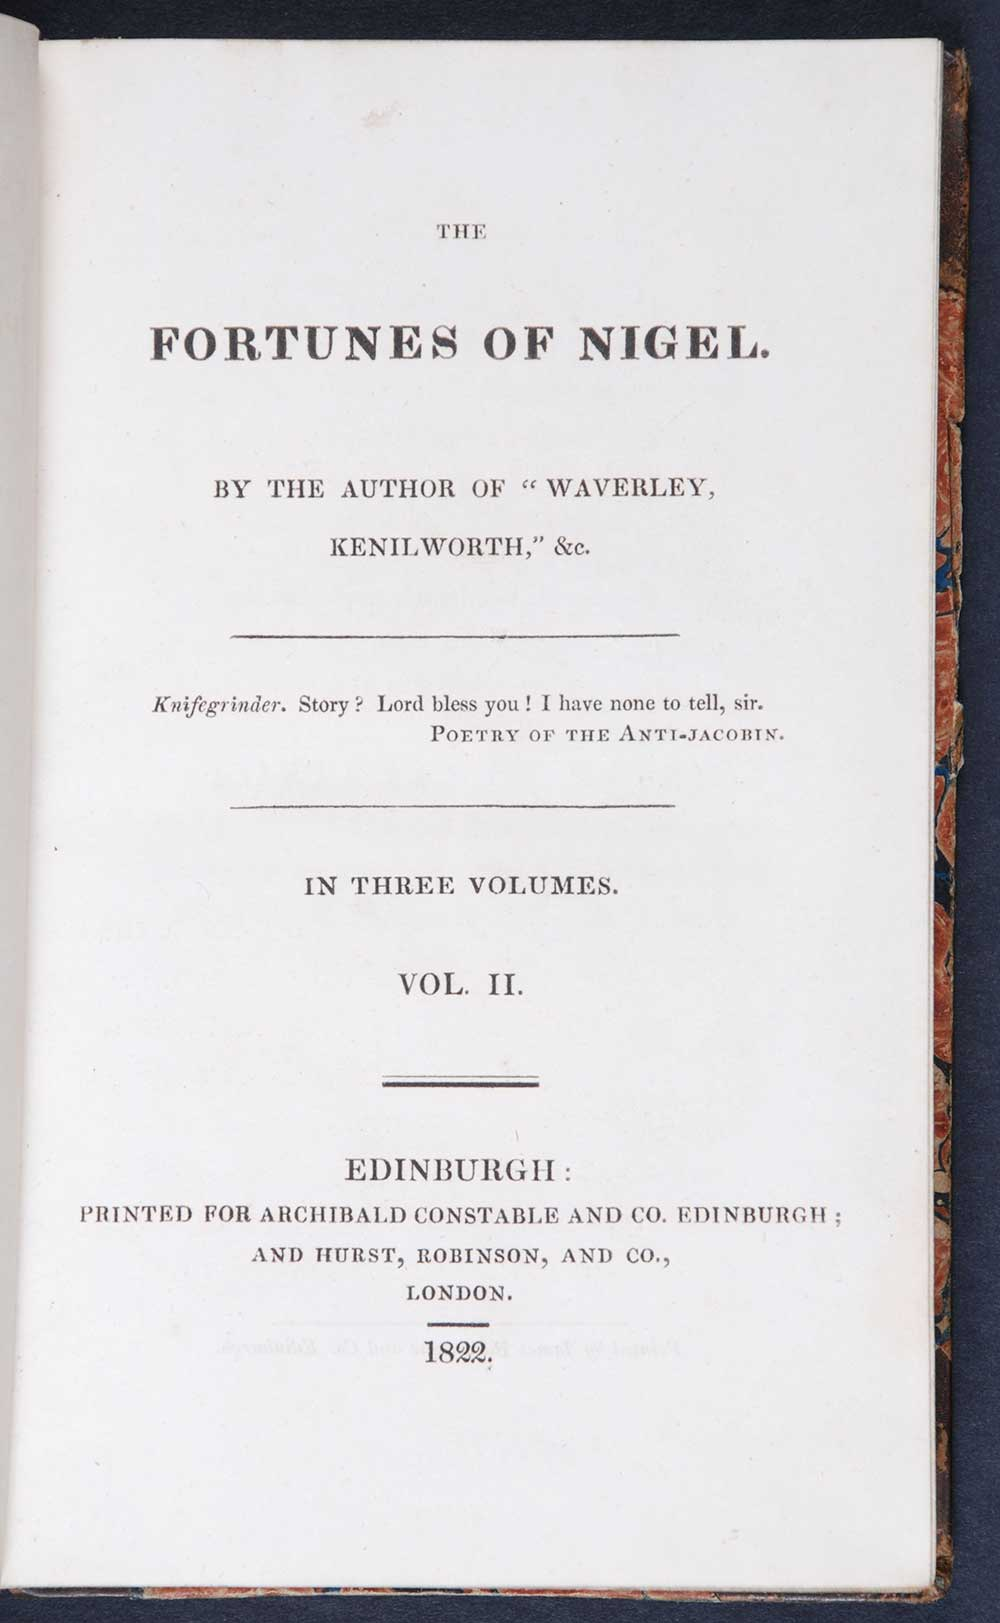 [Sir Walter Scott]. <em>The fortunes of Nigel.</em> [1st edition]. Edinburgh: Printed for Archibald Constable and Co., Edinburgh; and Hurst, Robinson and Co., London, 1822. Three volumes; Vol. 2 displayed.